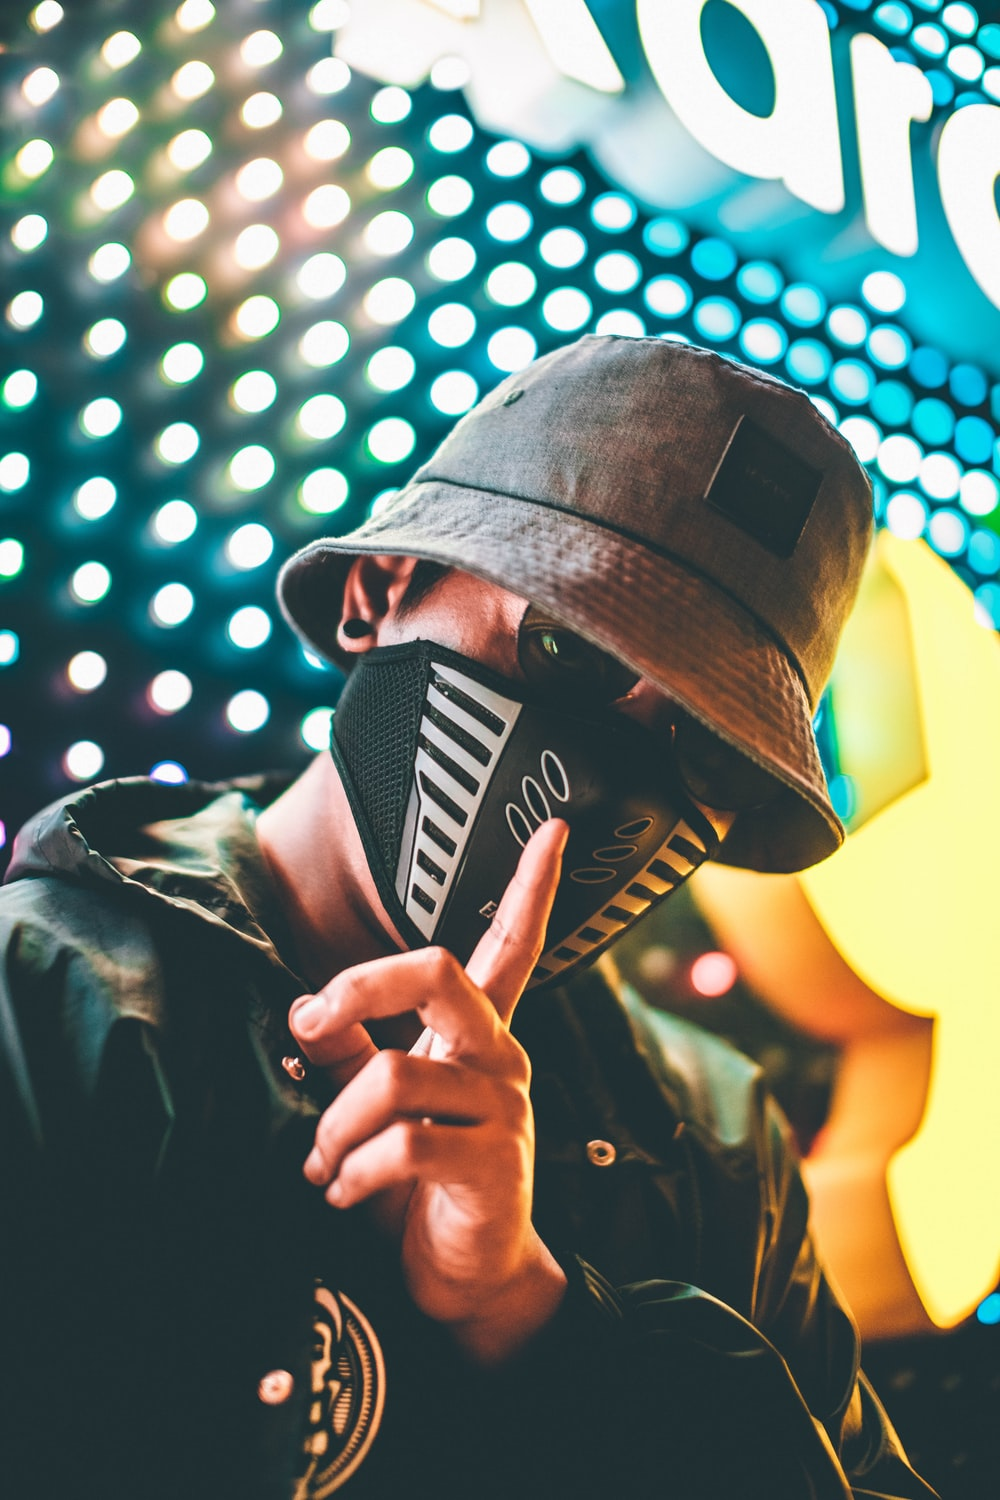 man wearing black bucket hat, mask, and jacket during night time